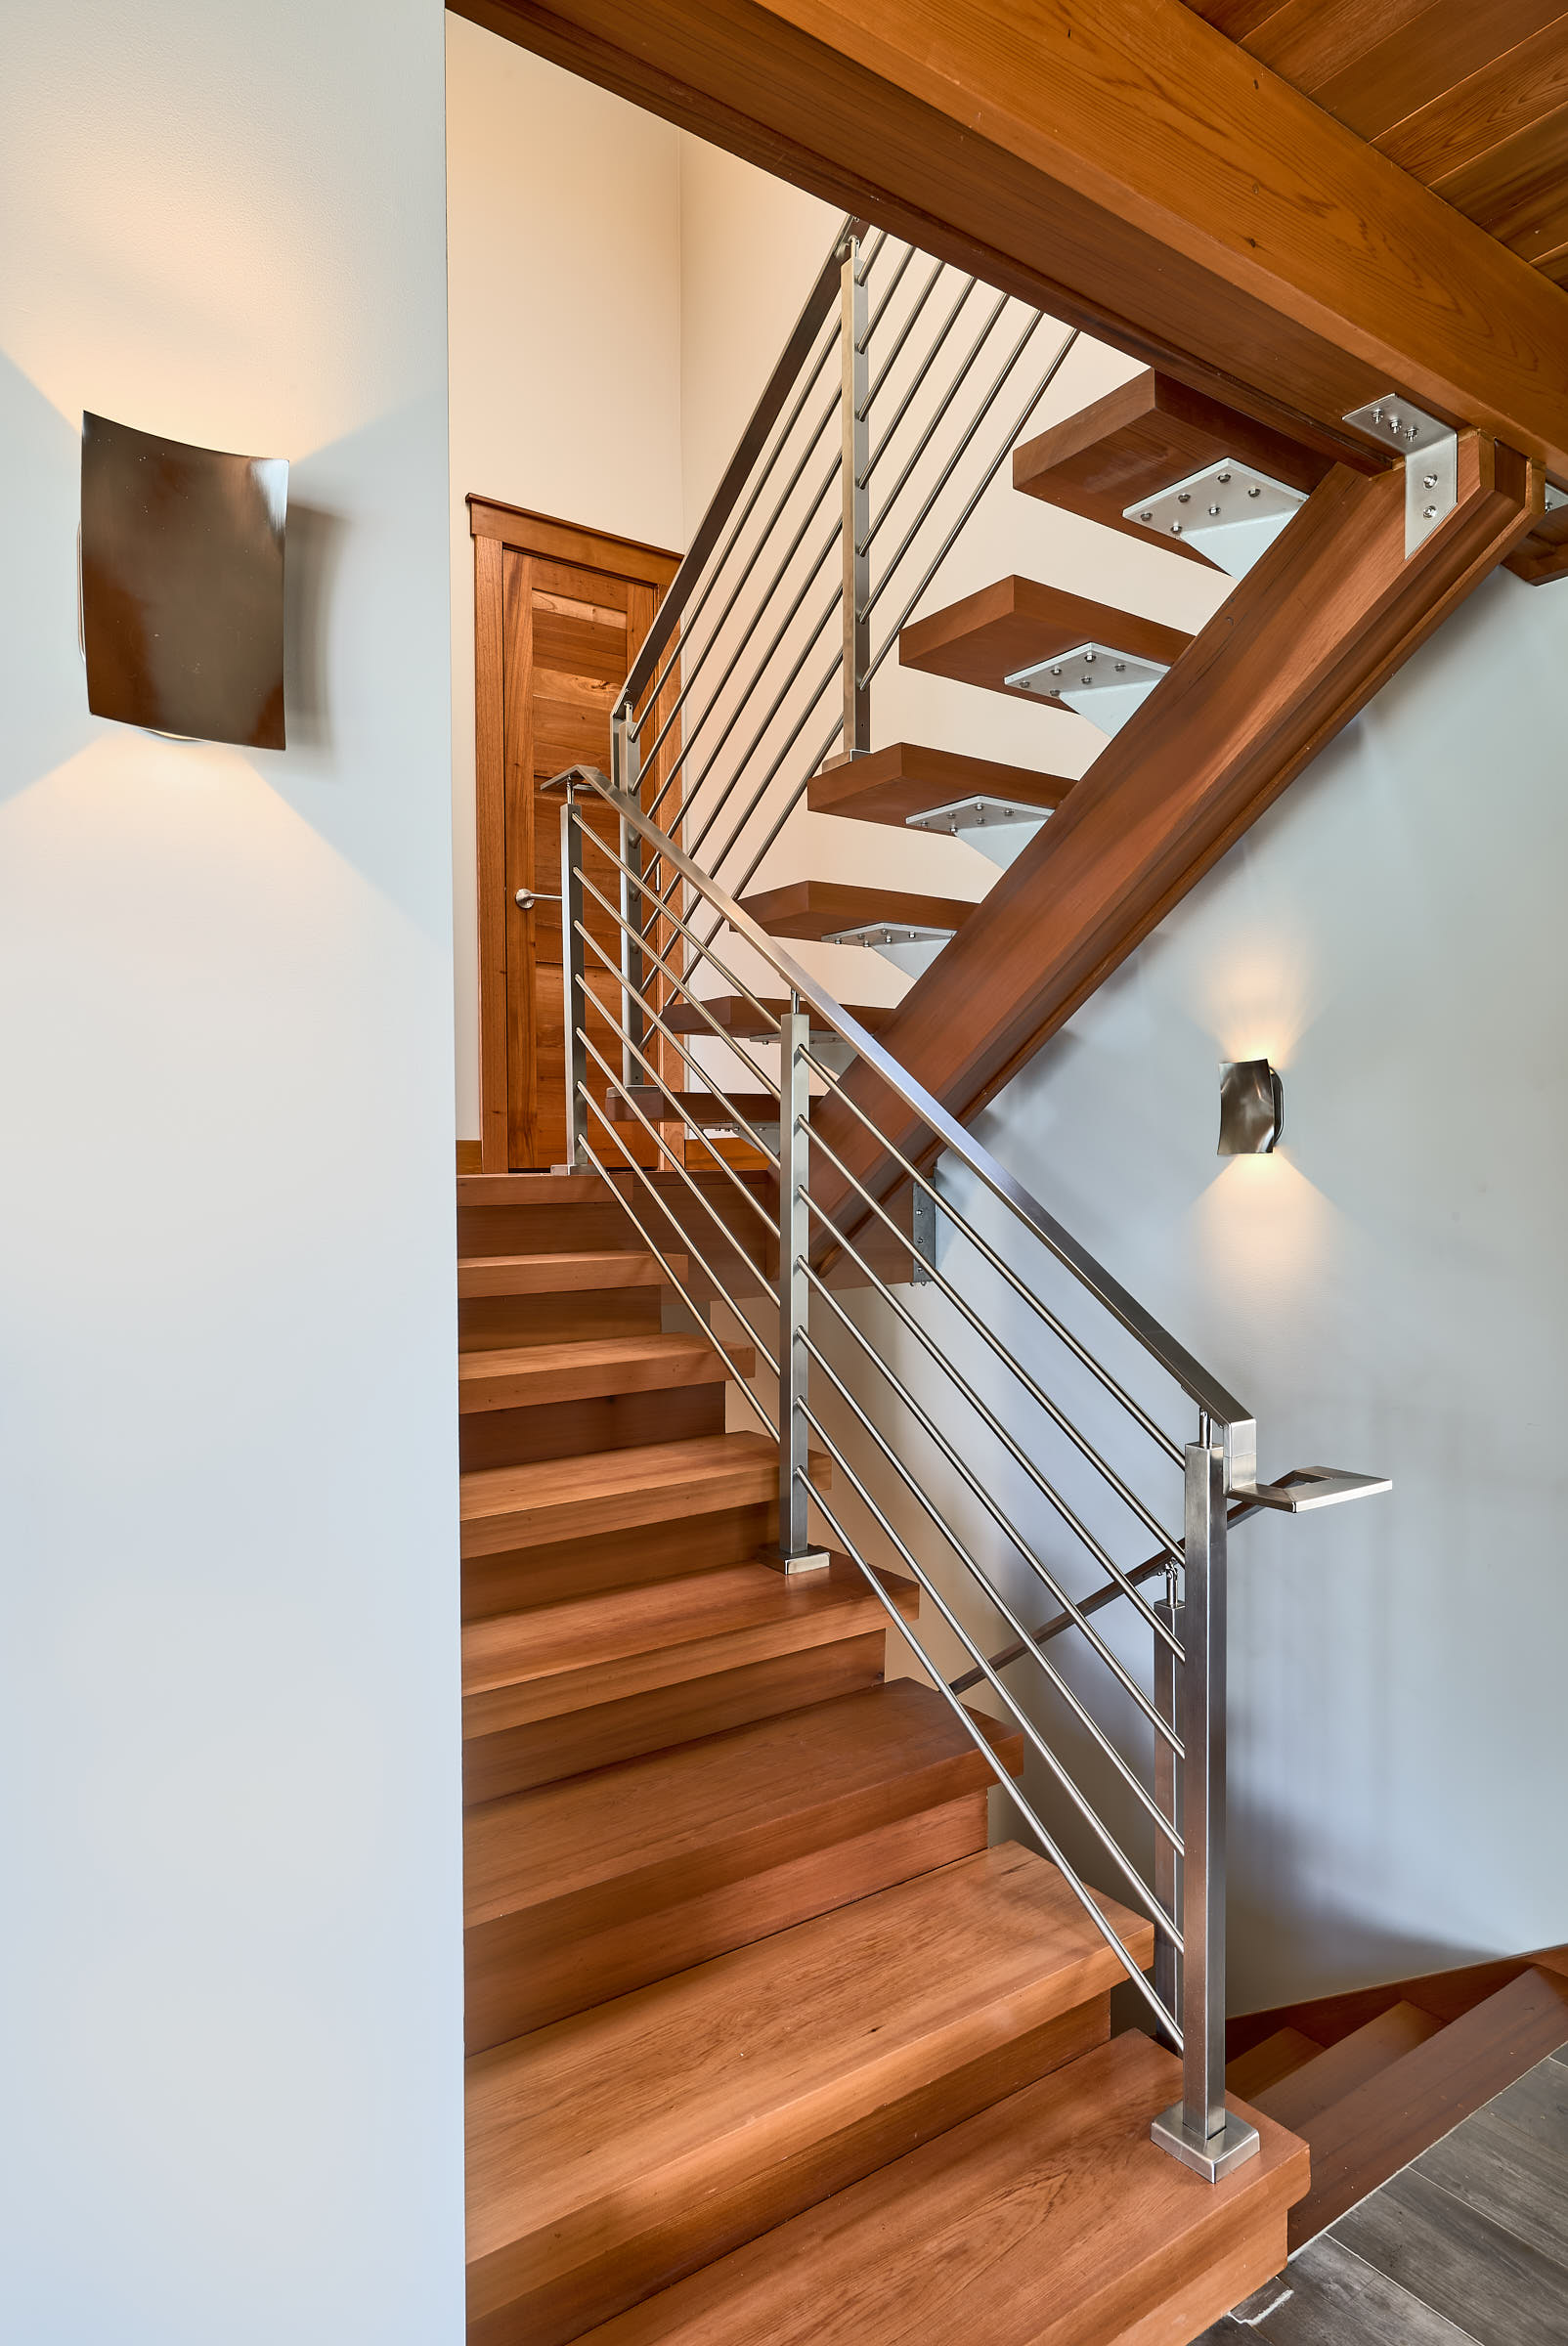 From the entry, the upper staircase treads float on a wood beam.